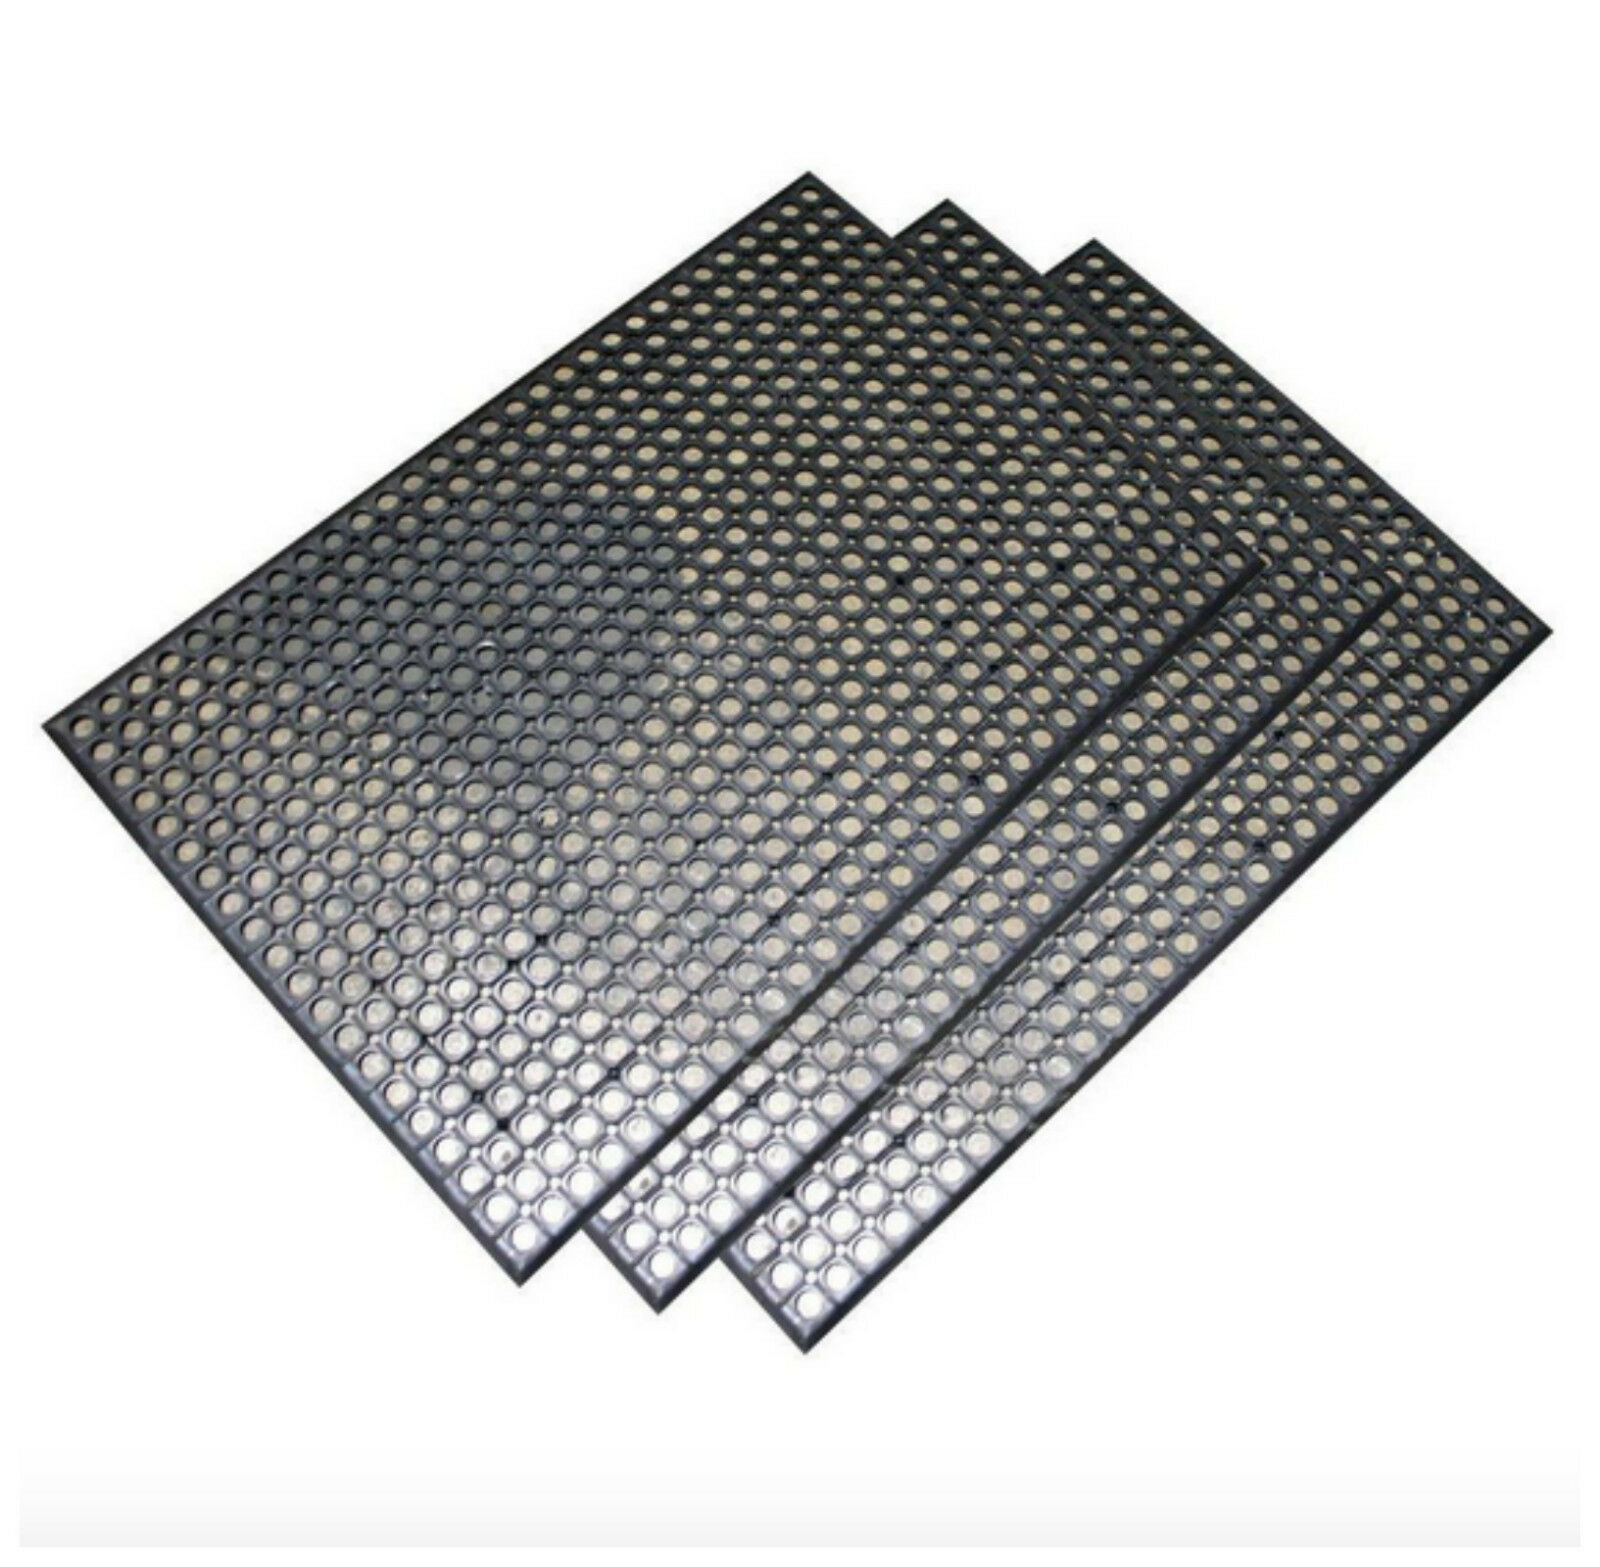 RUBBER ANTI FATIGUE Mat Kitchen Floor Commercial Industrial Safety ...